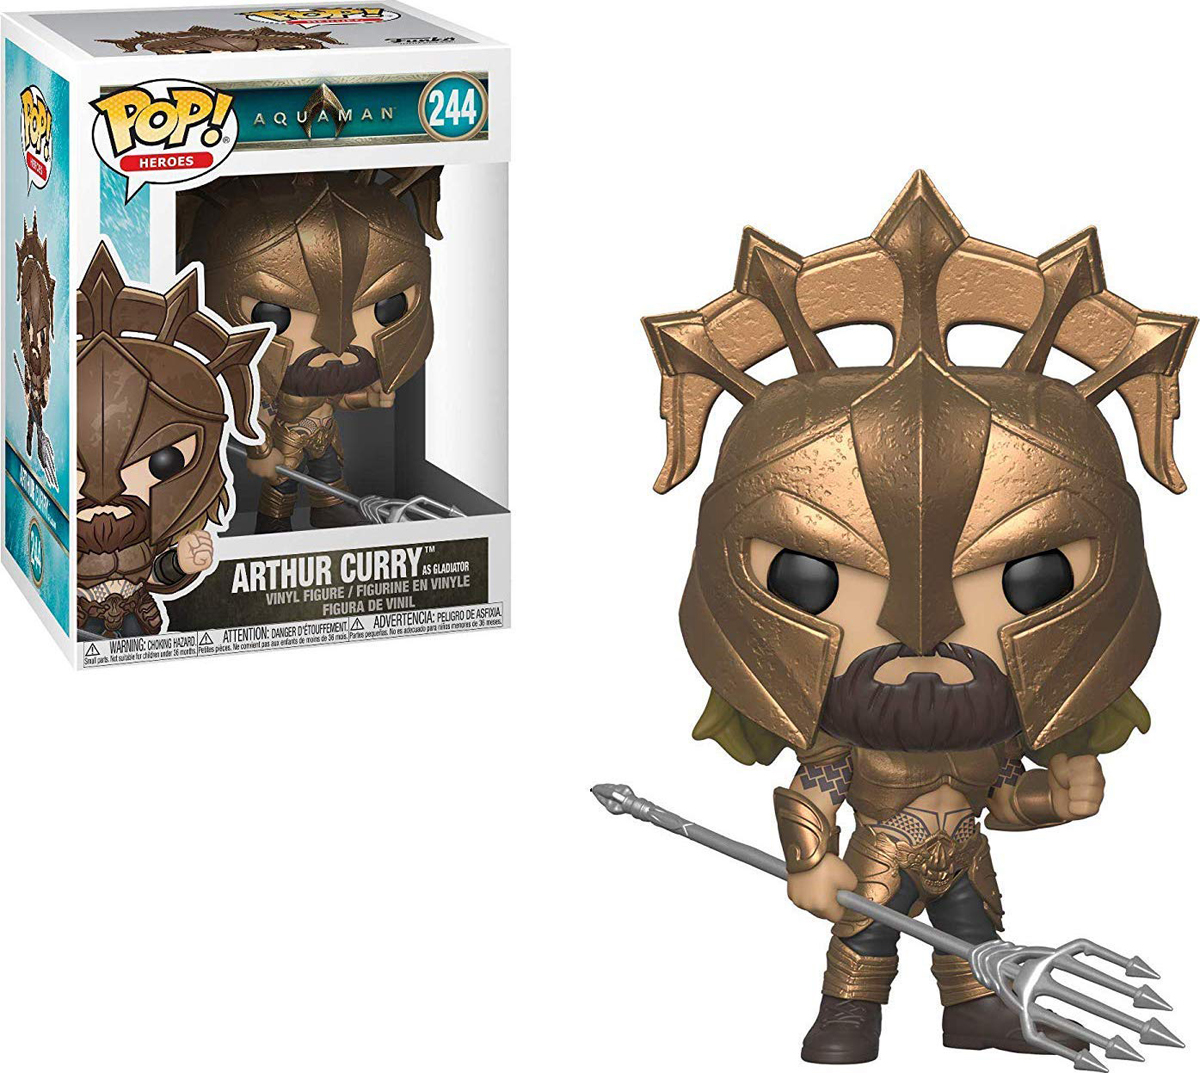 все цены на Фигурка Funko POP! Vinyl: Aquaman: Arthur Curry as Gladiator POP 2 31176 онлайн